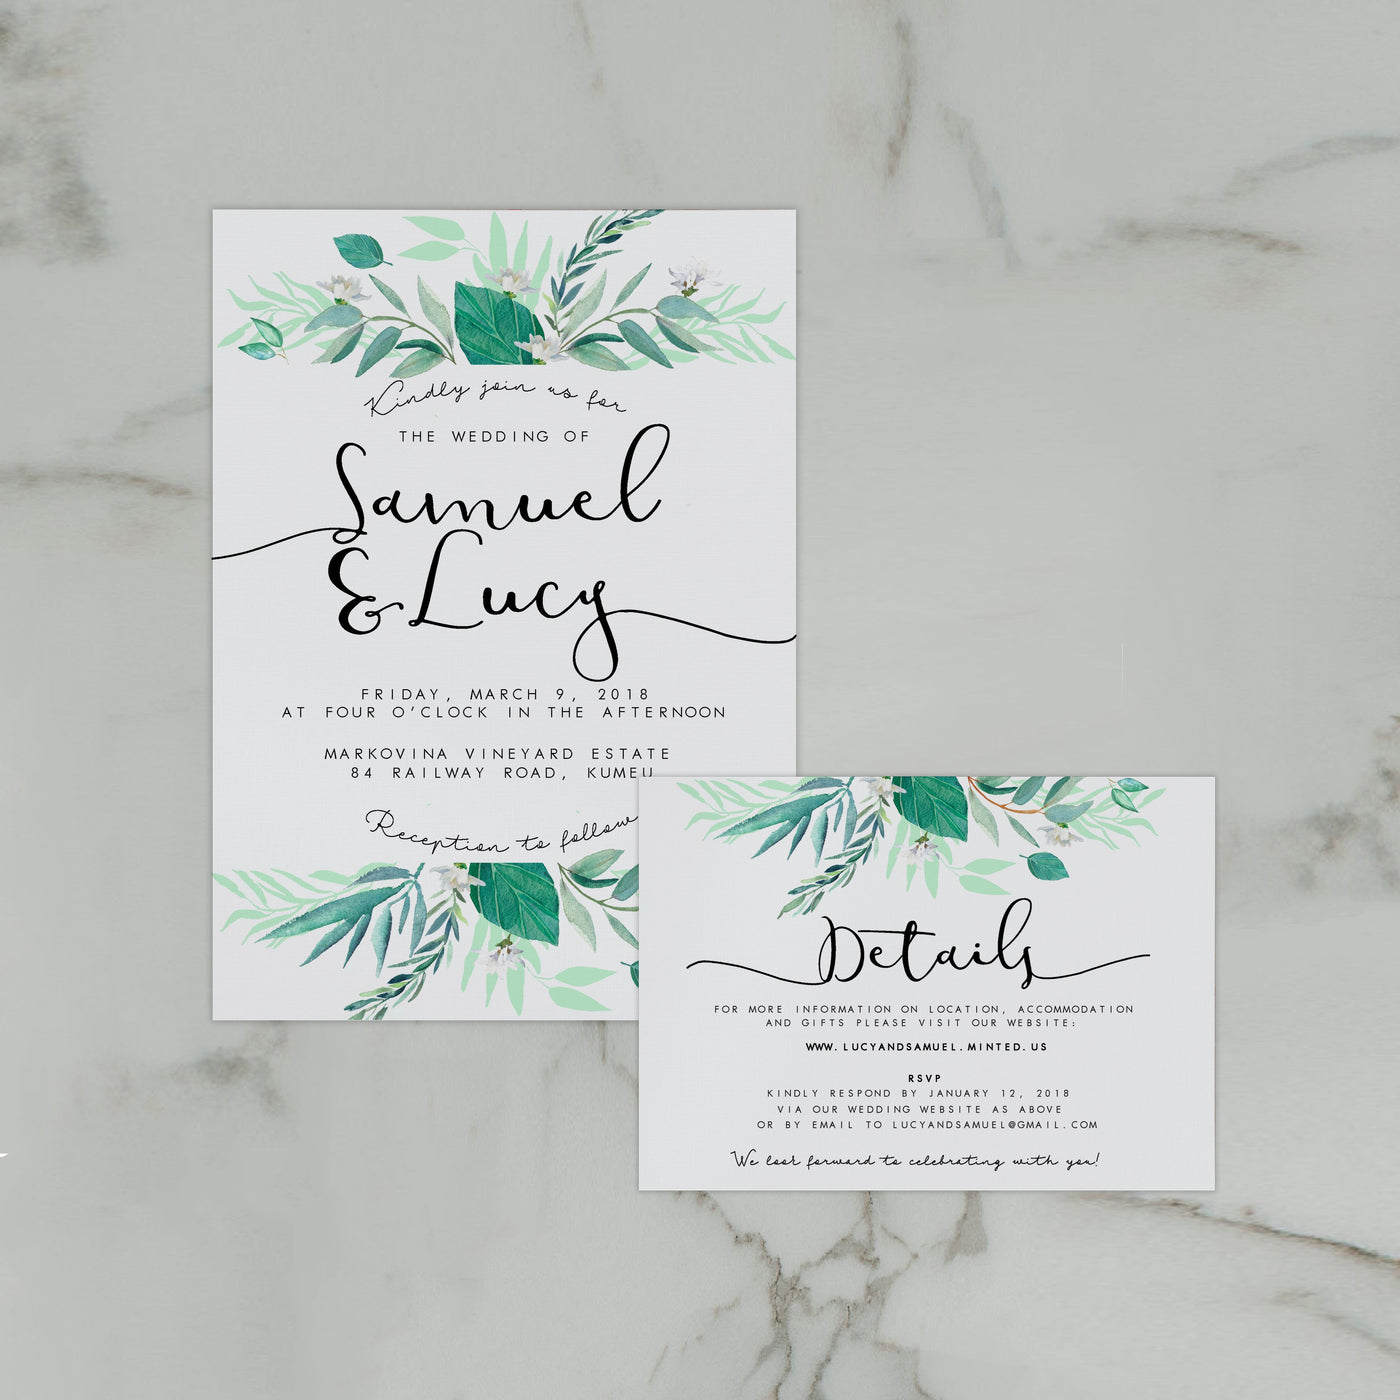 ITALIAN WEDDING INVITE/INFORMATION SET